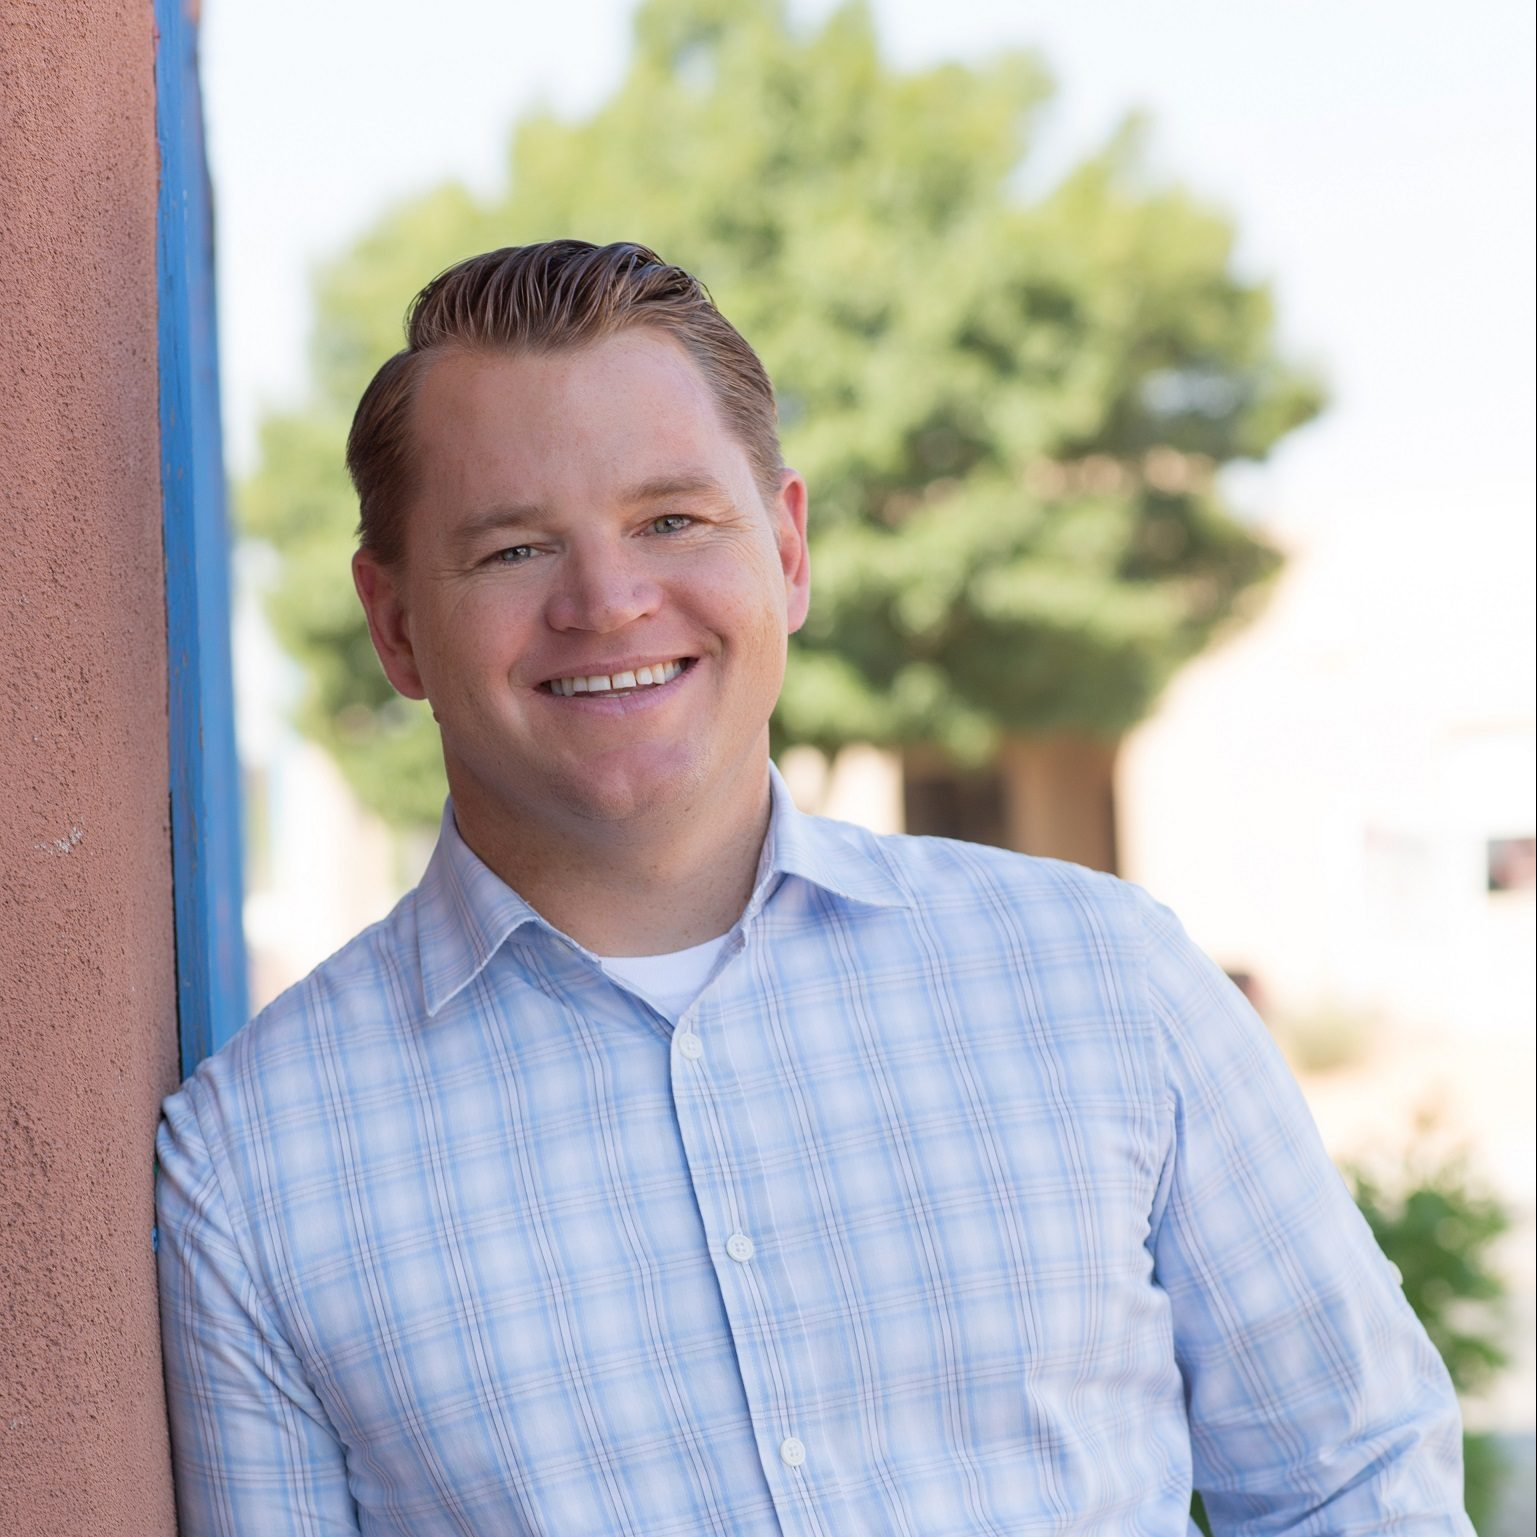 Lee Silverman - Real Estate Agent selling and buying homes in Las Cruces New Mexico